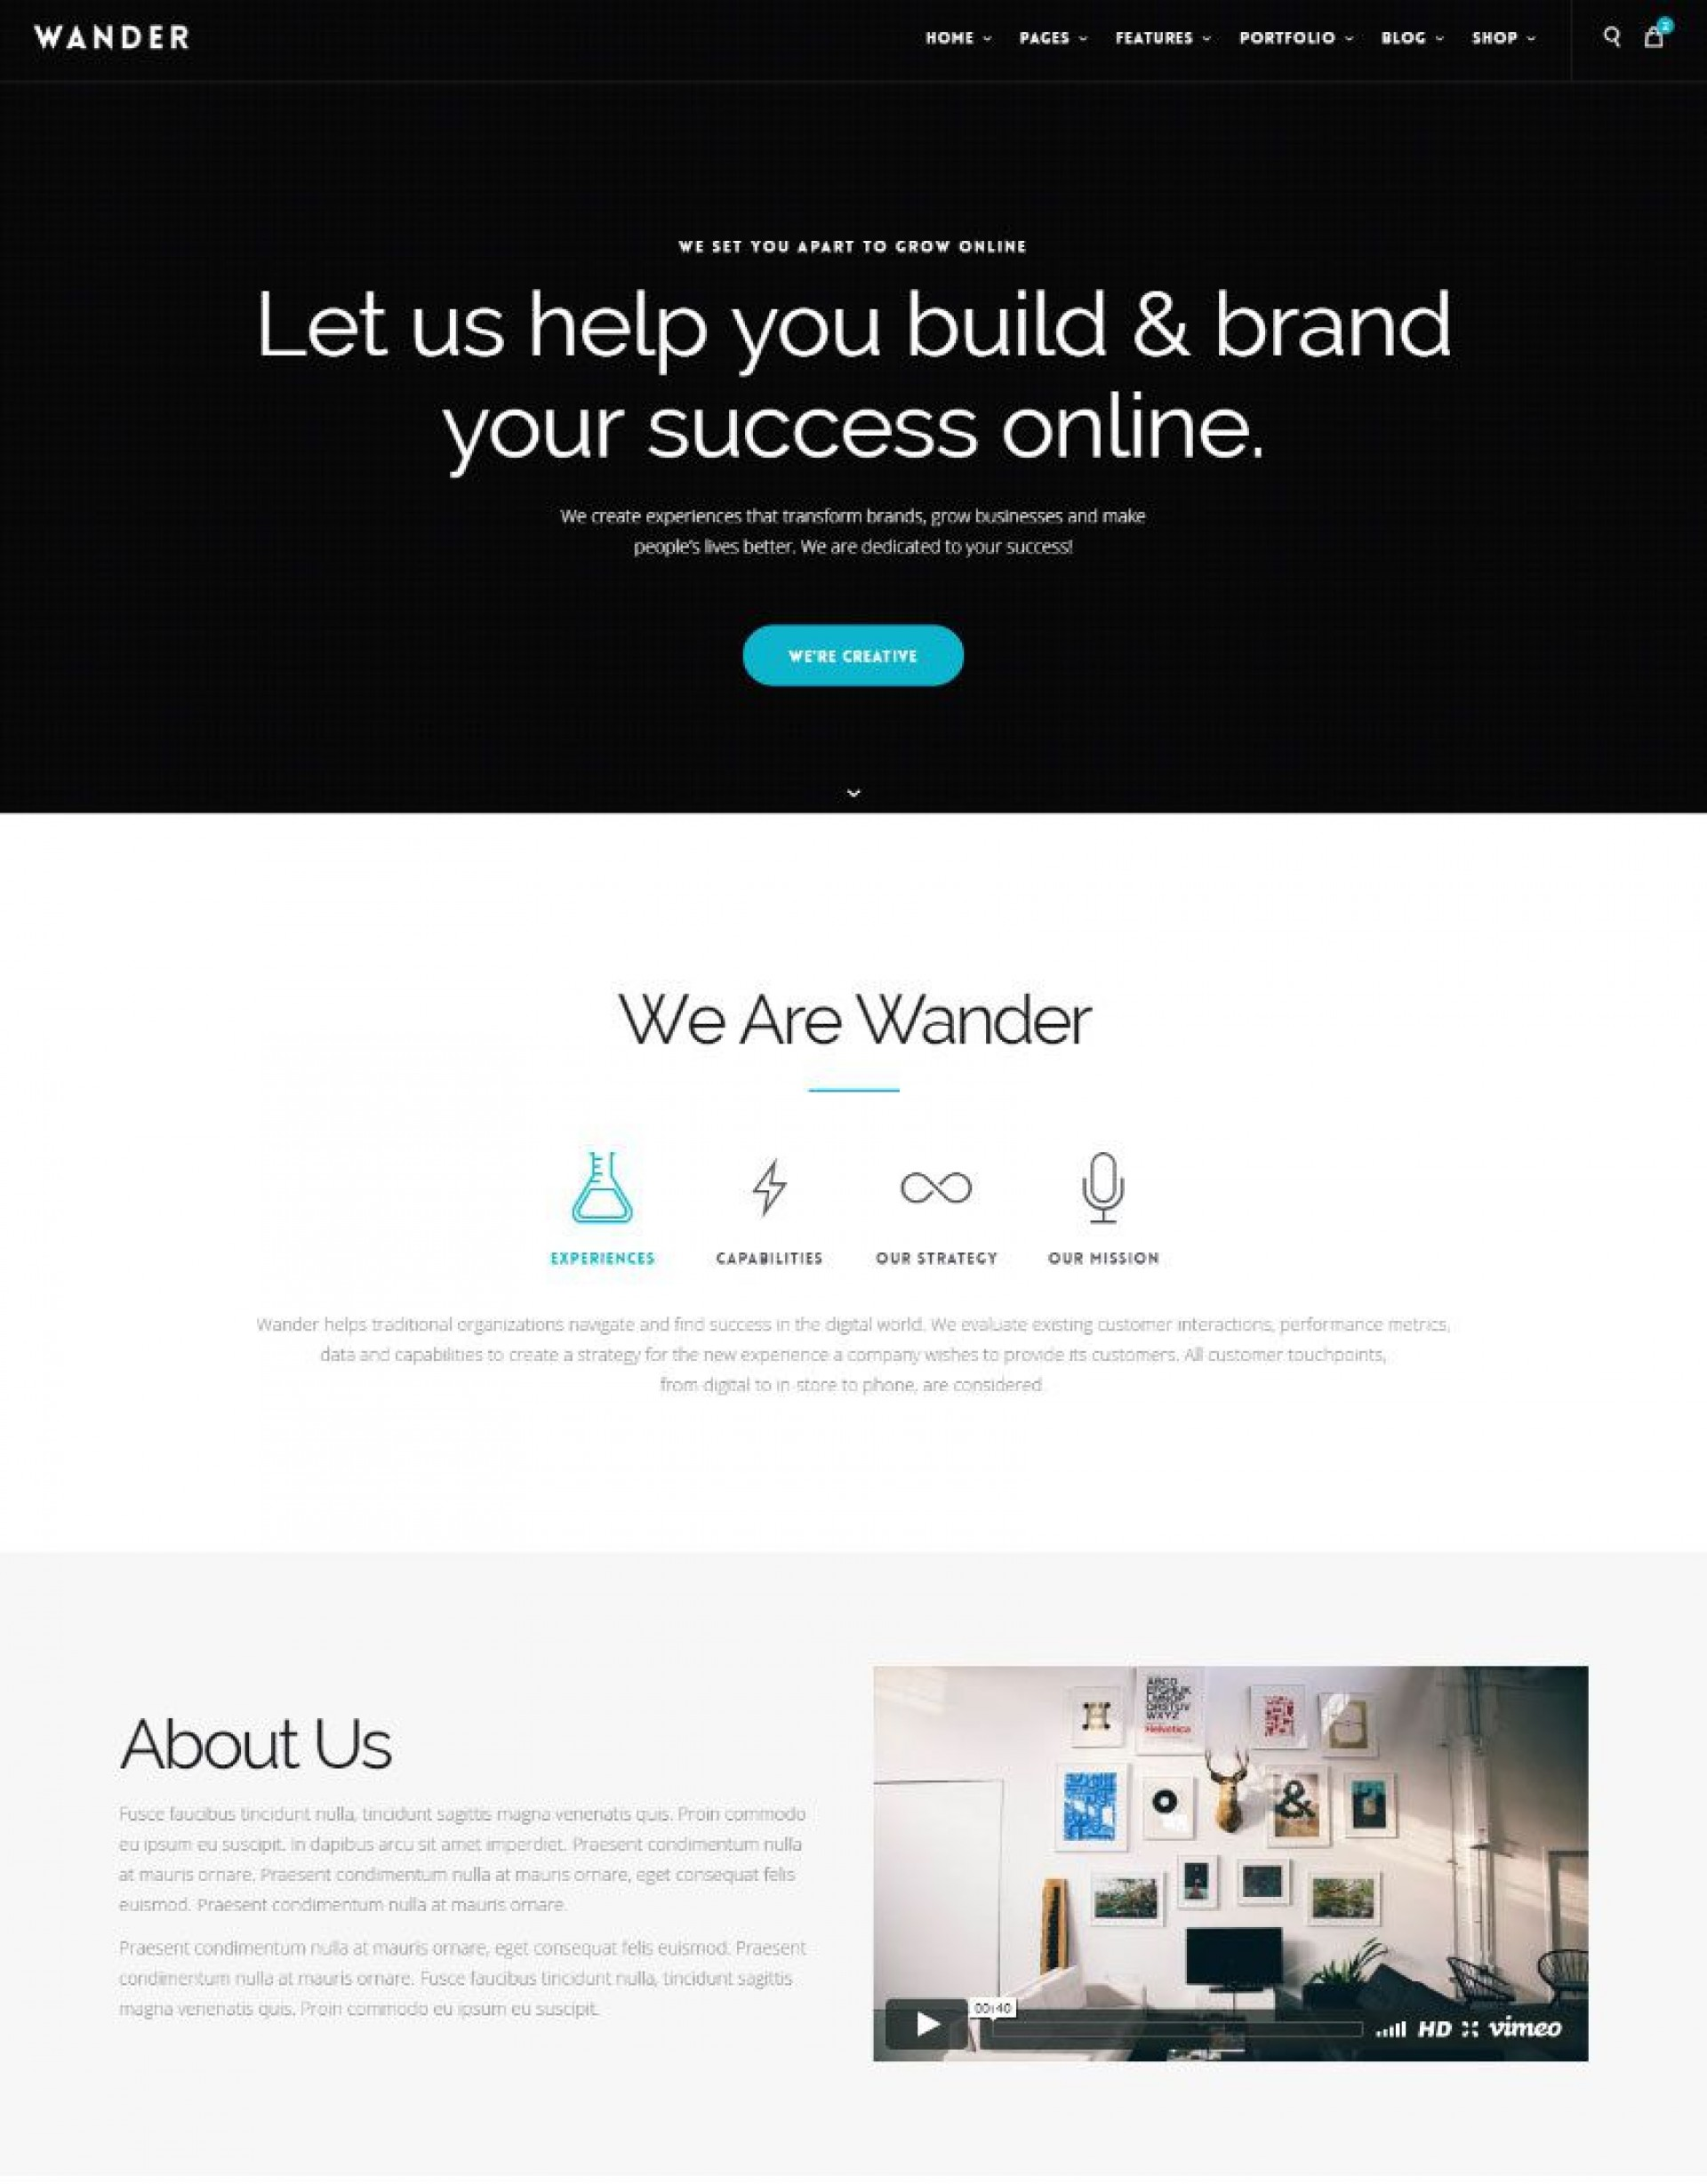 009 Best Single Page Website Template Design  Templates Free Download One Html1920